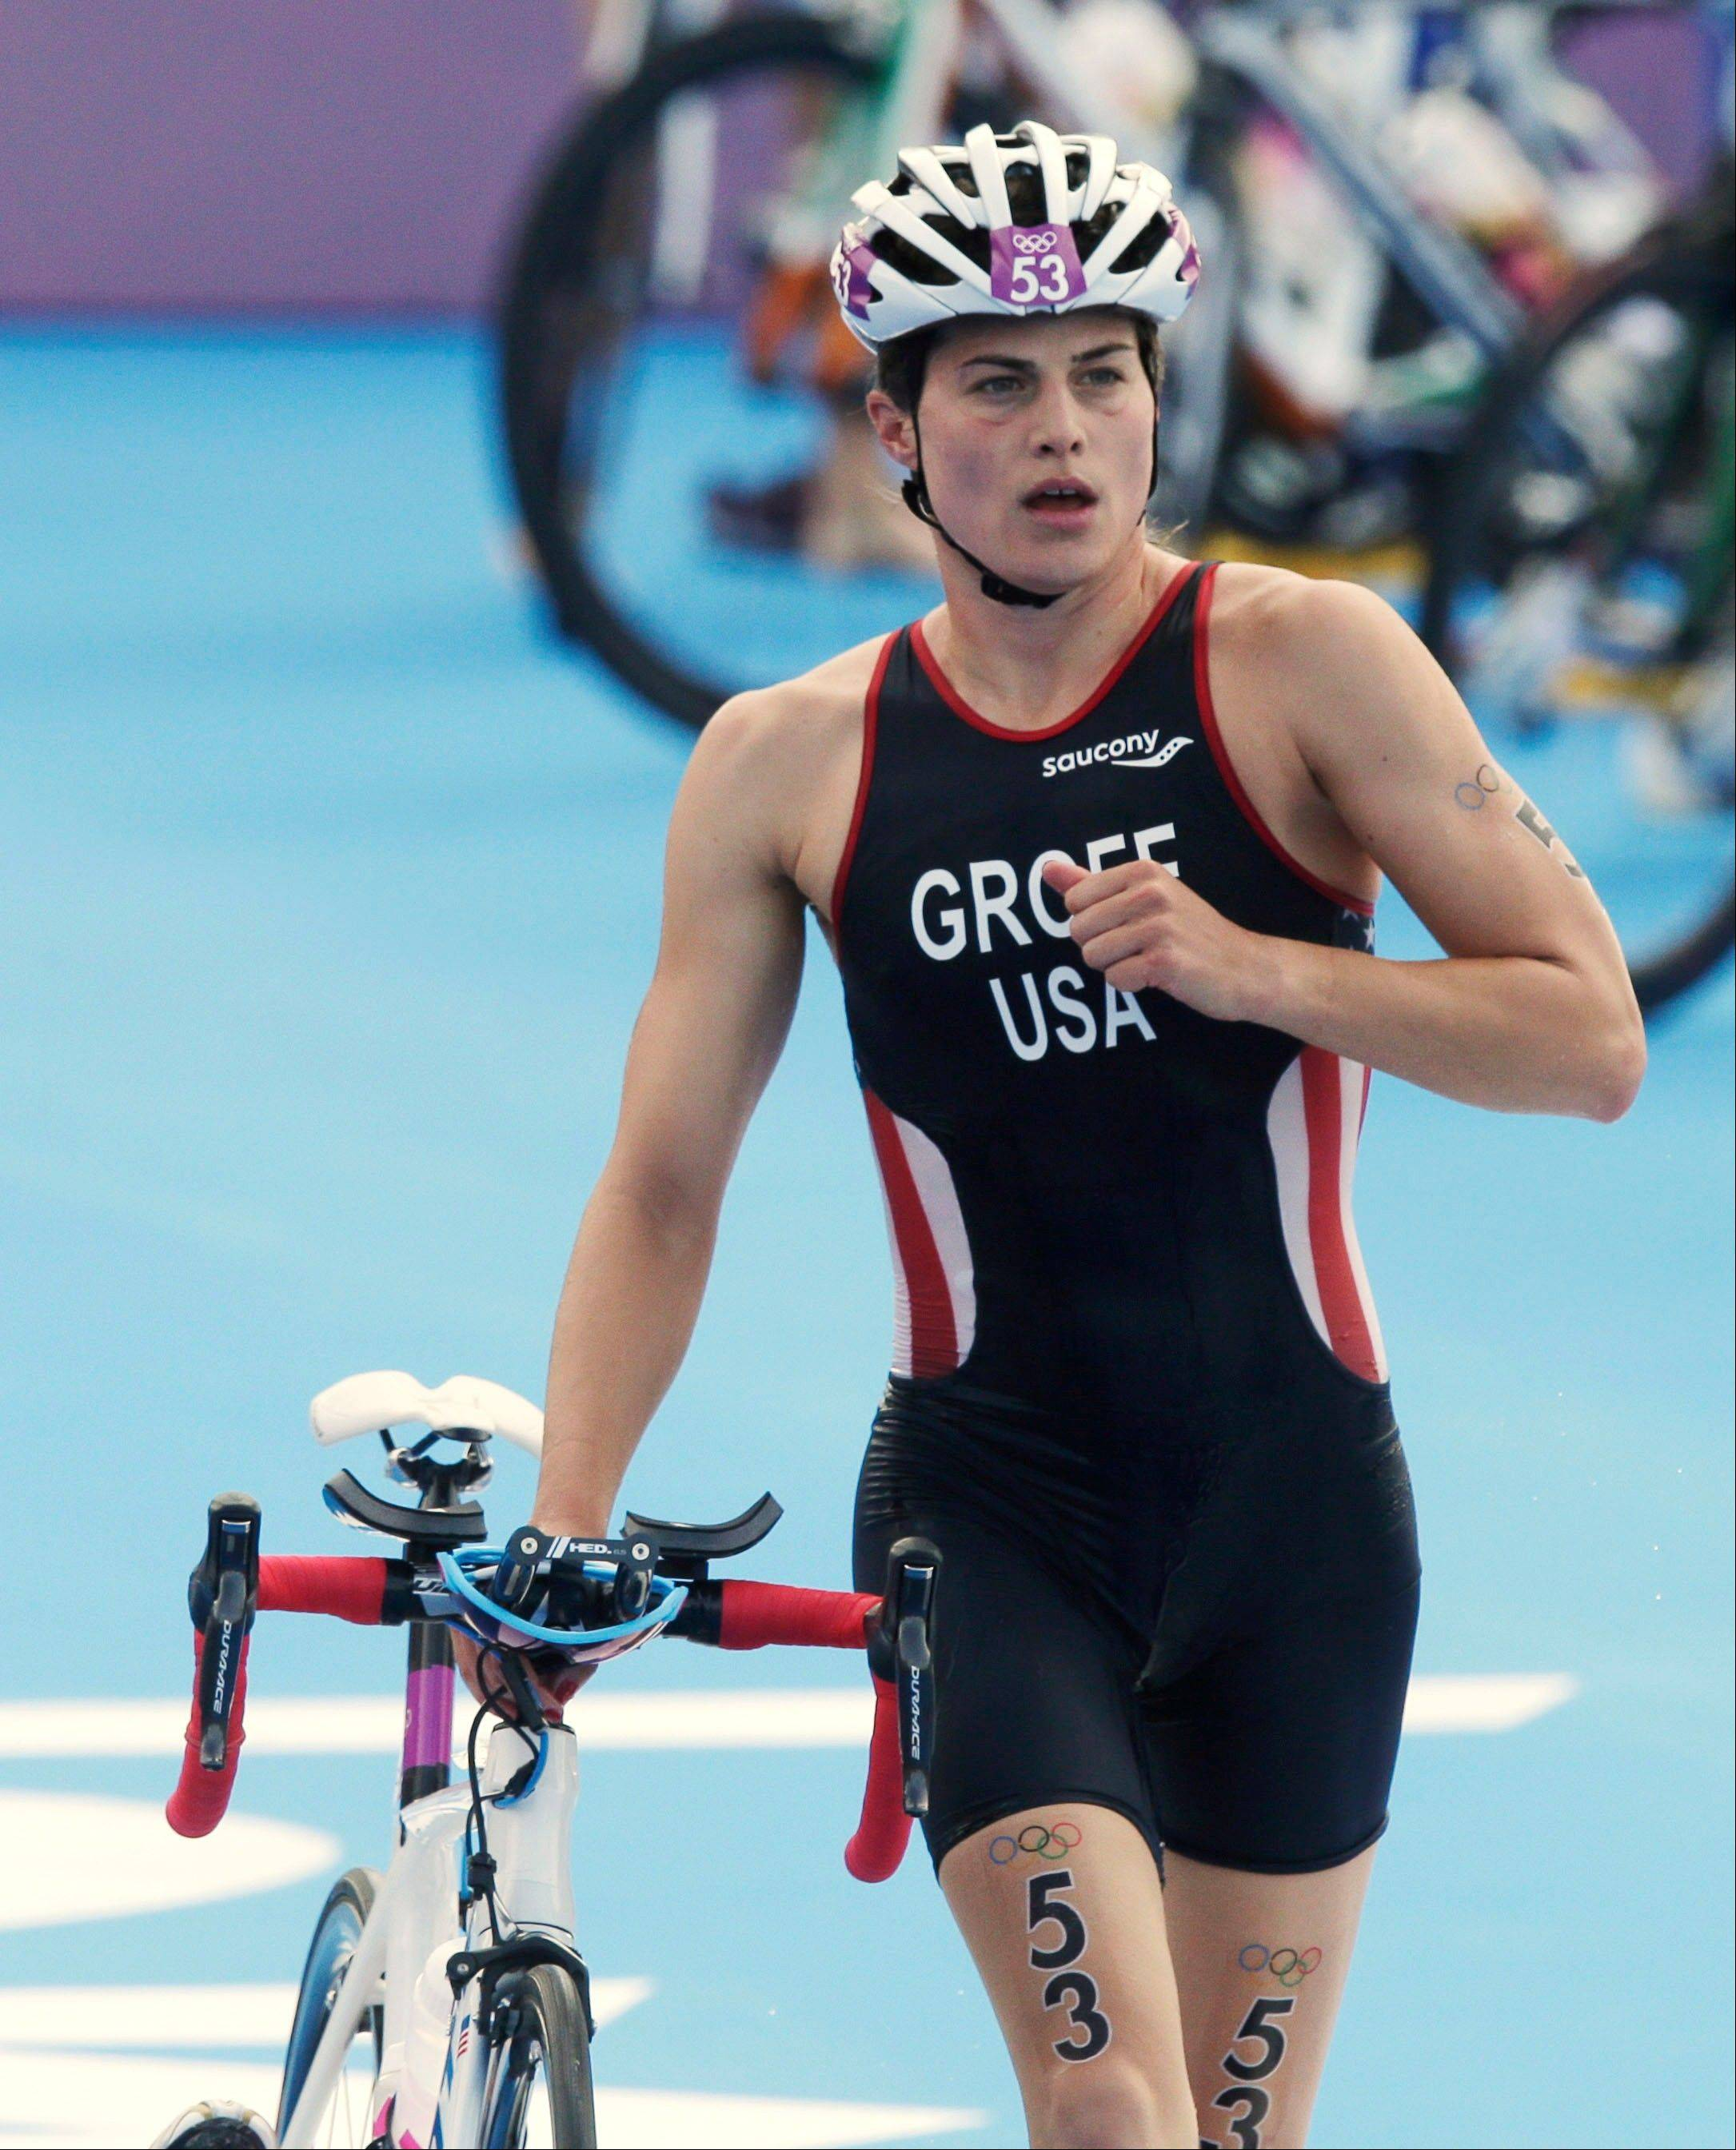 United States' Sarah Groff leaves the transition during the triathlon at the 2012 Summer Olympics, Saturday, Aug. 4, 2012, in London.